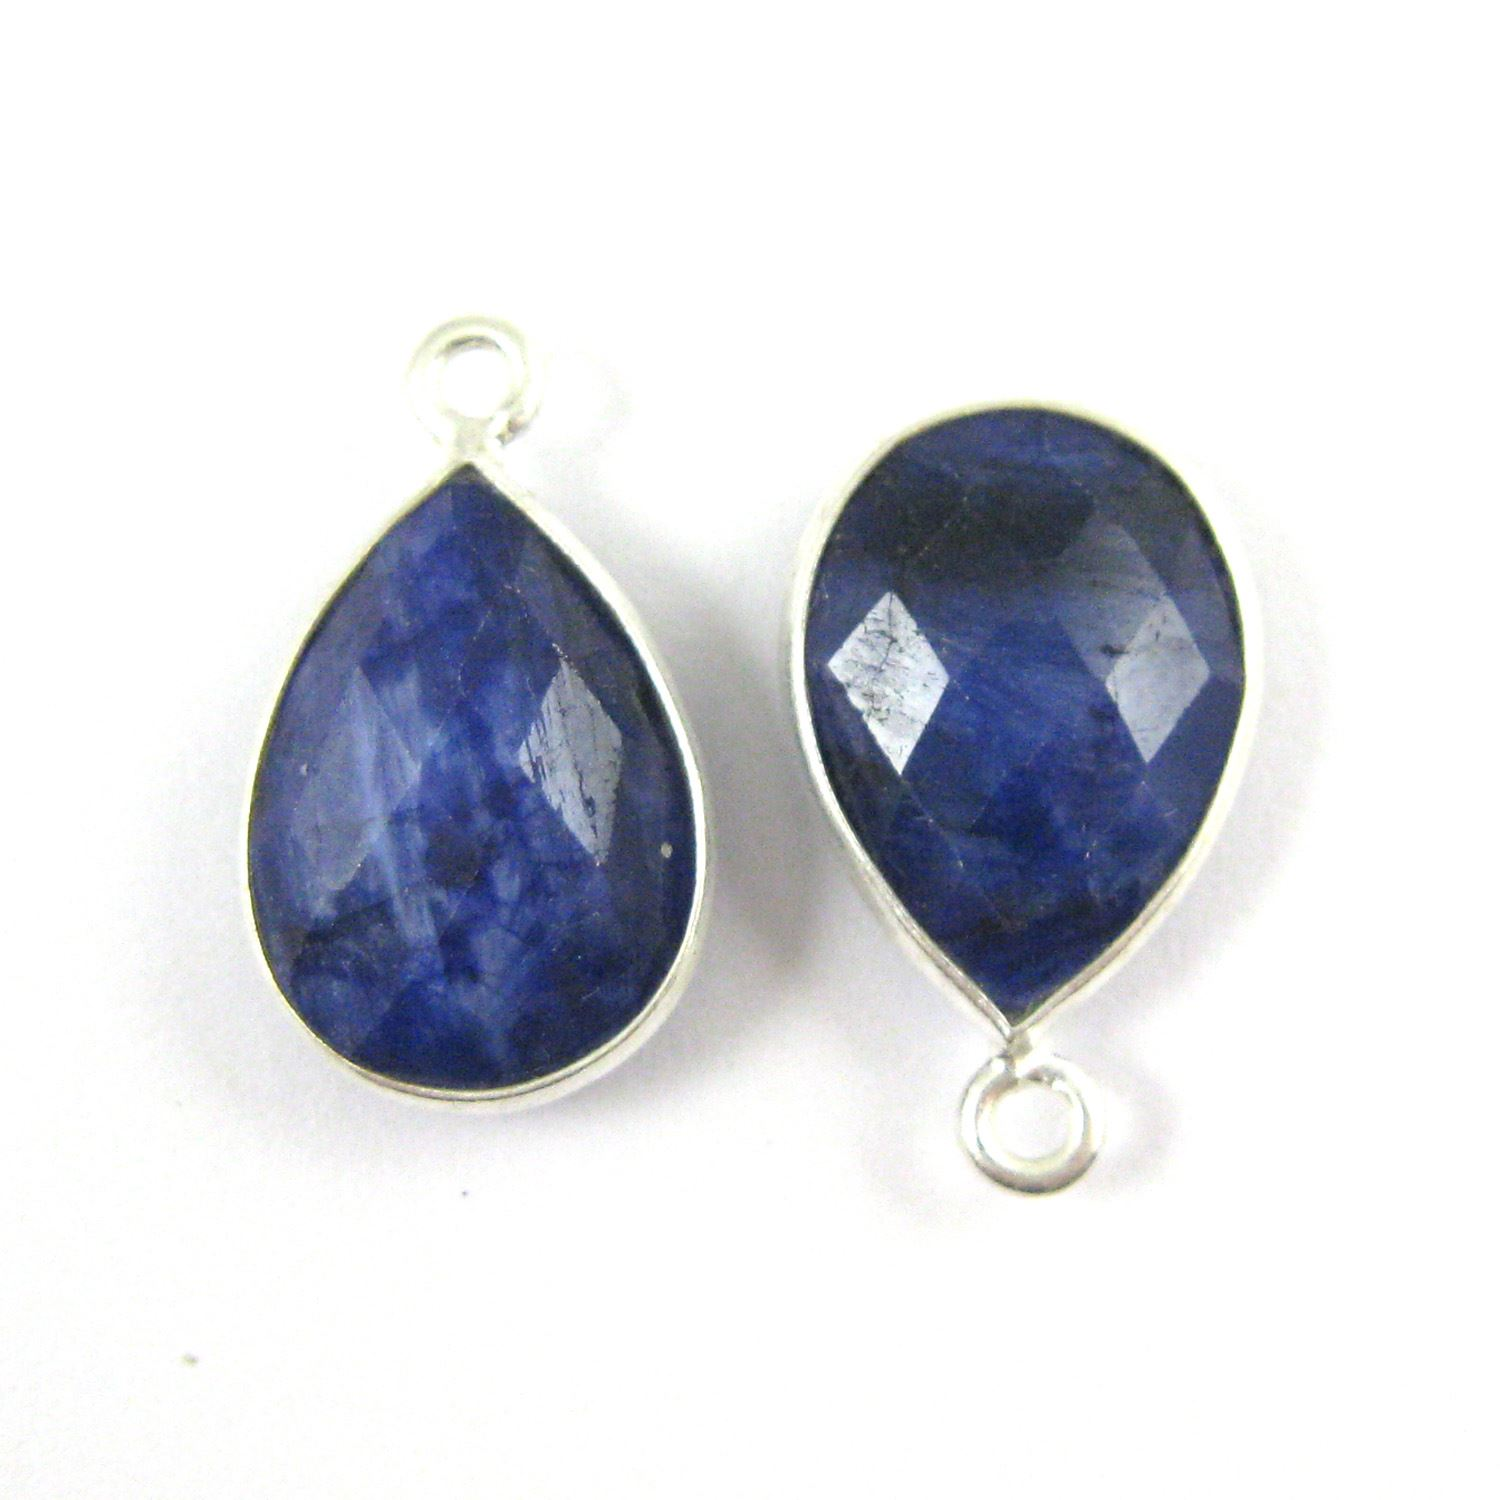 Bezel Gemstone Pendant -Sterling Silver Gem- 10x14mm Faceted Small Teardop Shape - Blue Sapphire Dyed (sold per 2 pieces)